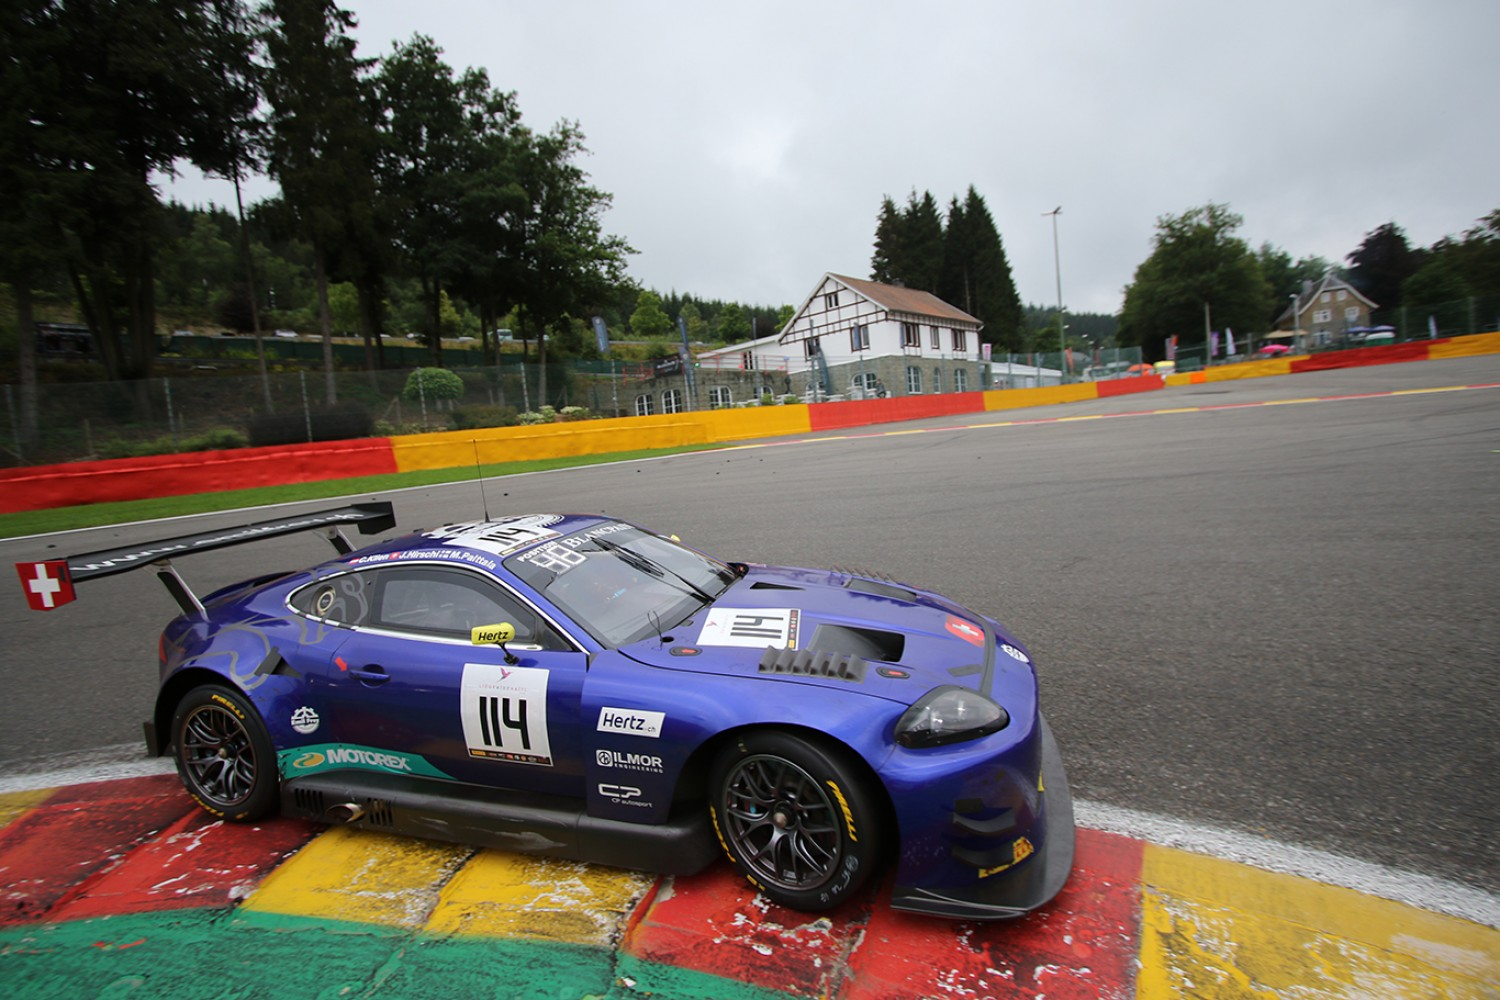 EMIL FREY JAGUAR RACING TO RACE FOR FIFTH TIME AT THE TOTAL 24 HOURS OF SPA